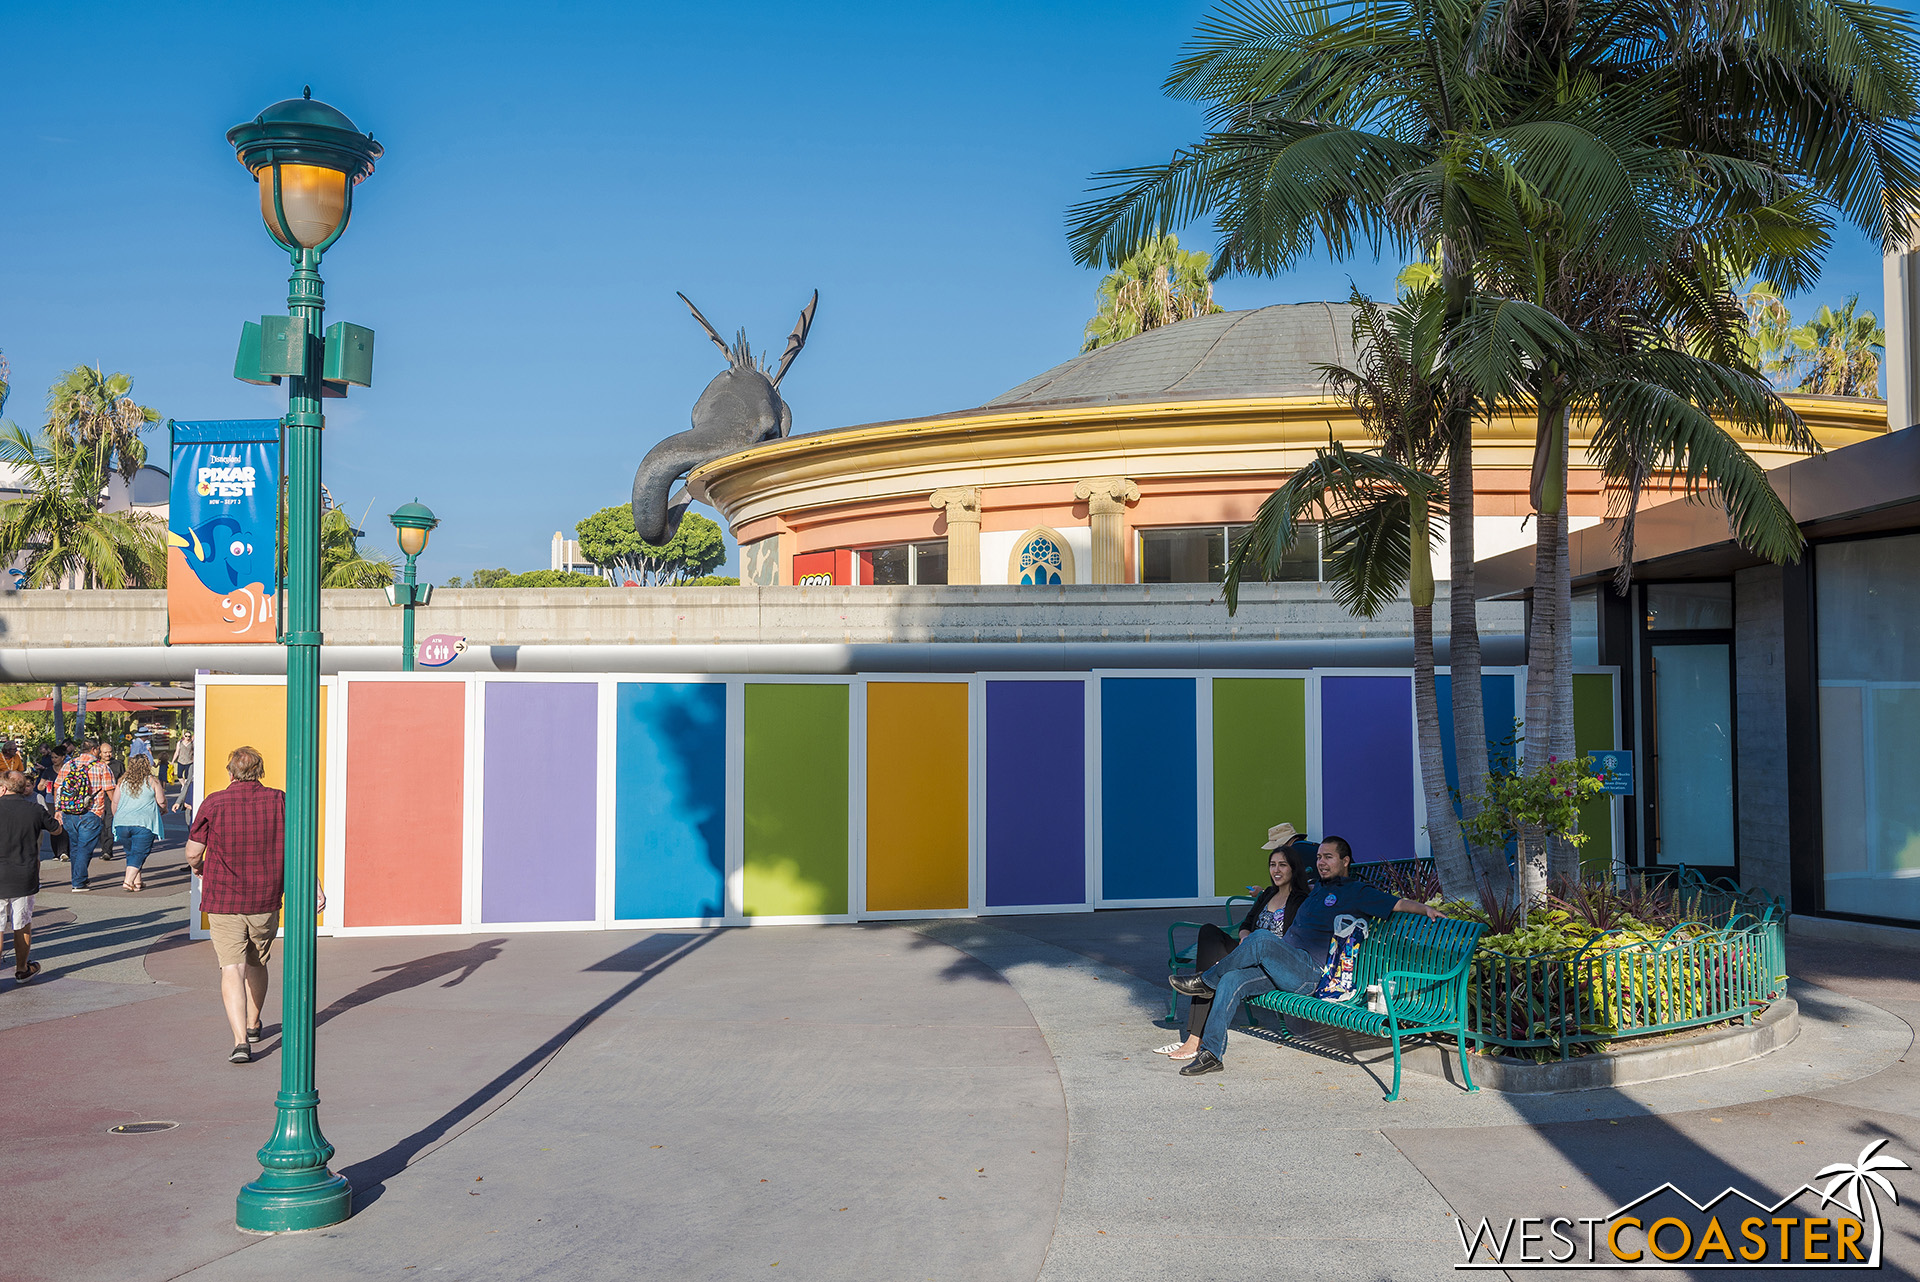 Here's the walled off area under the monorail we referenced last update.